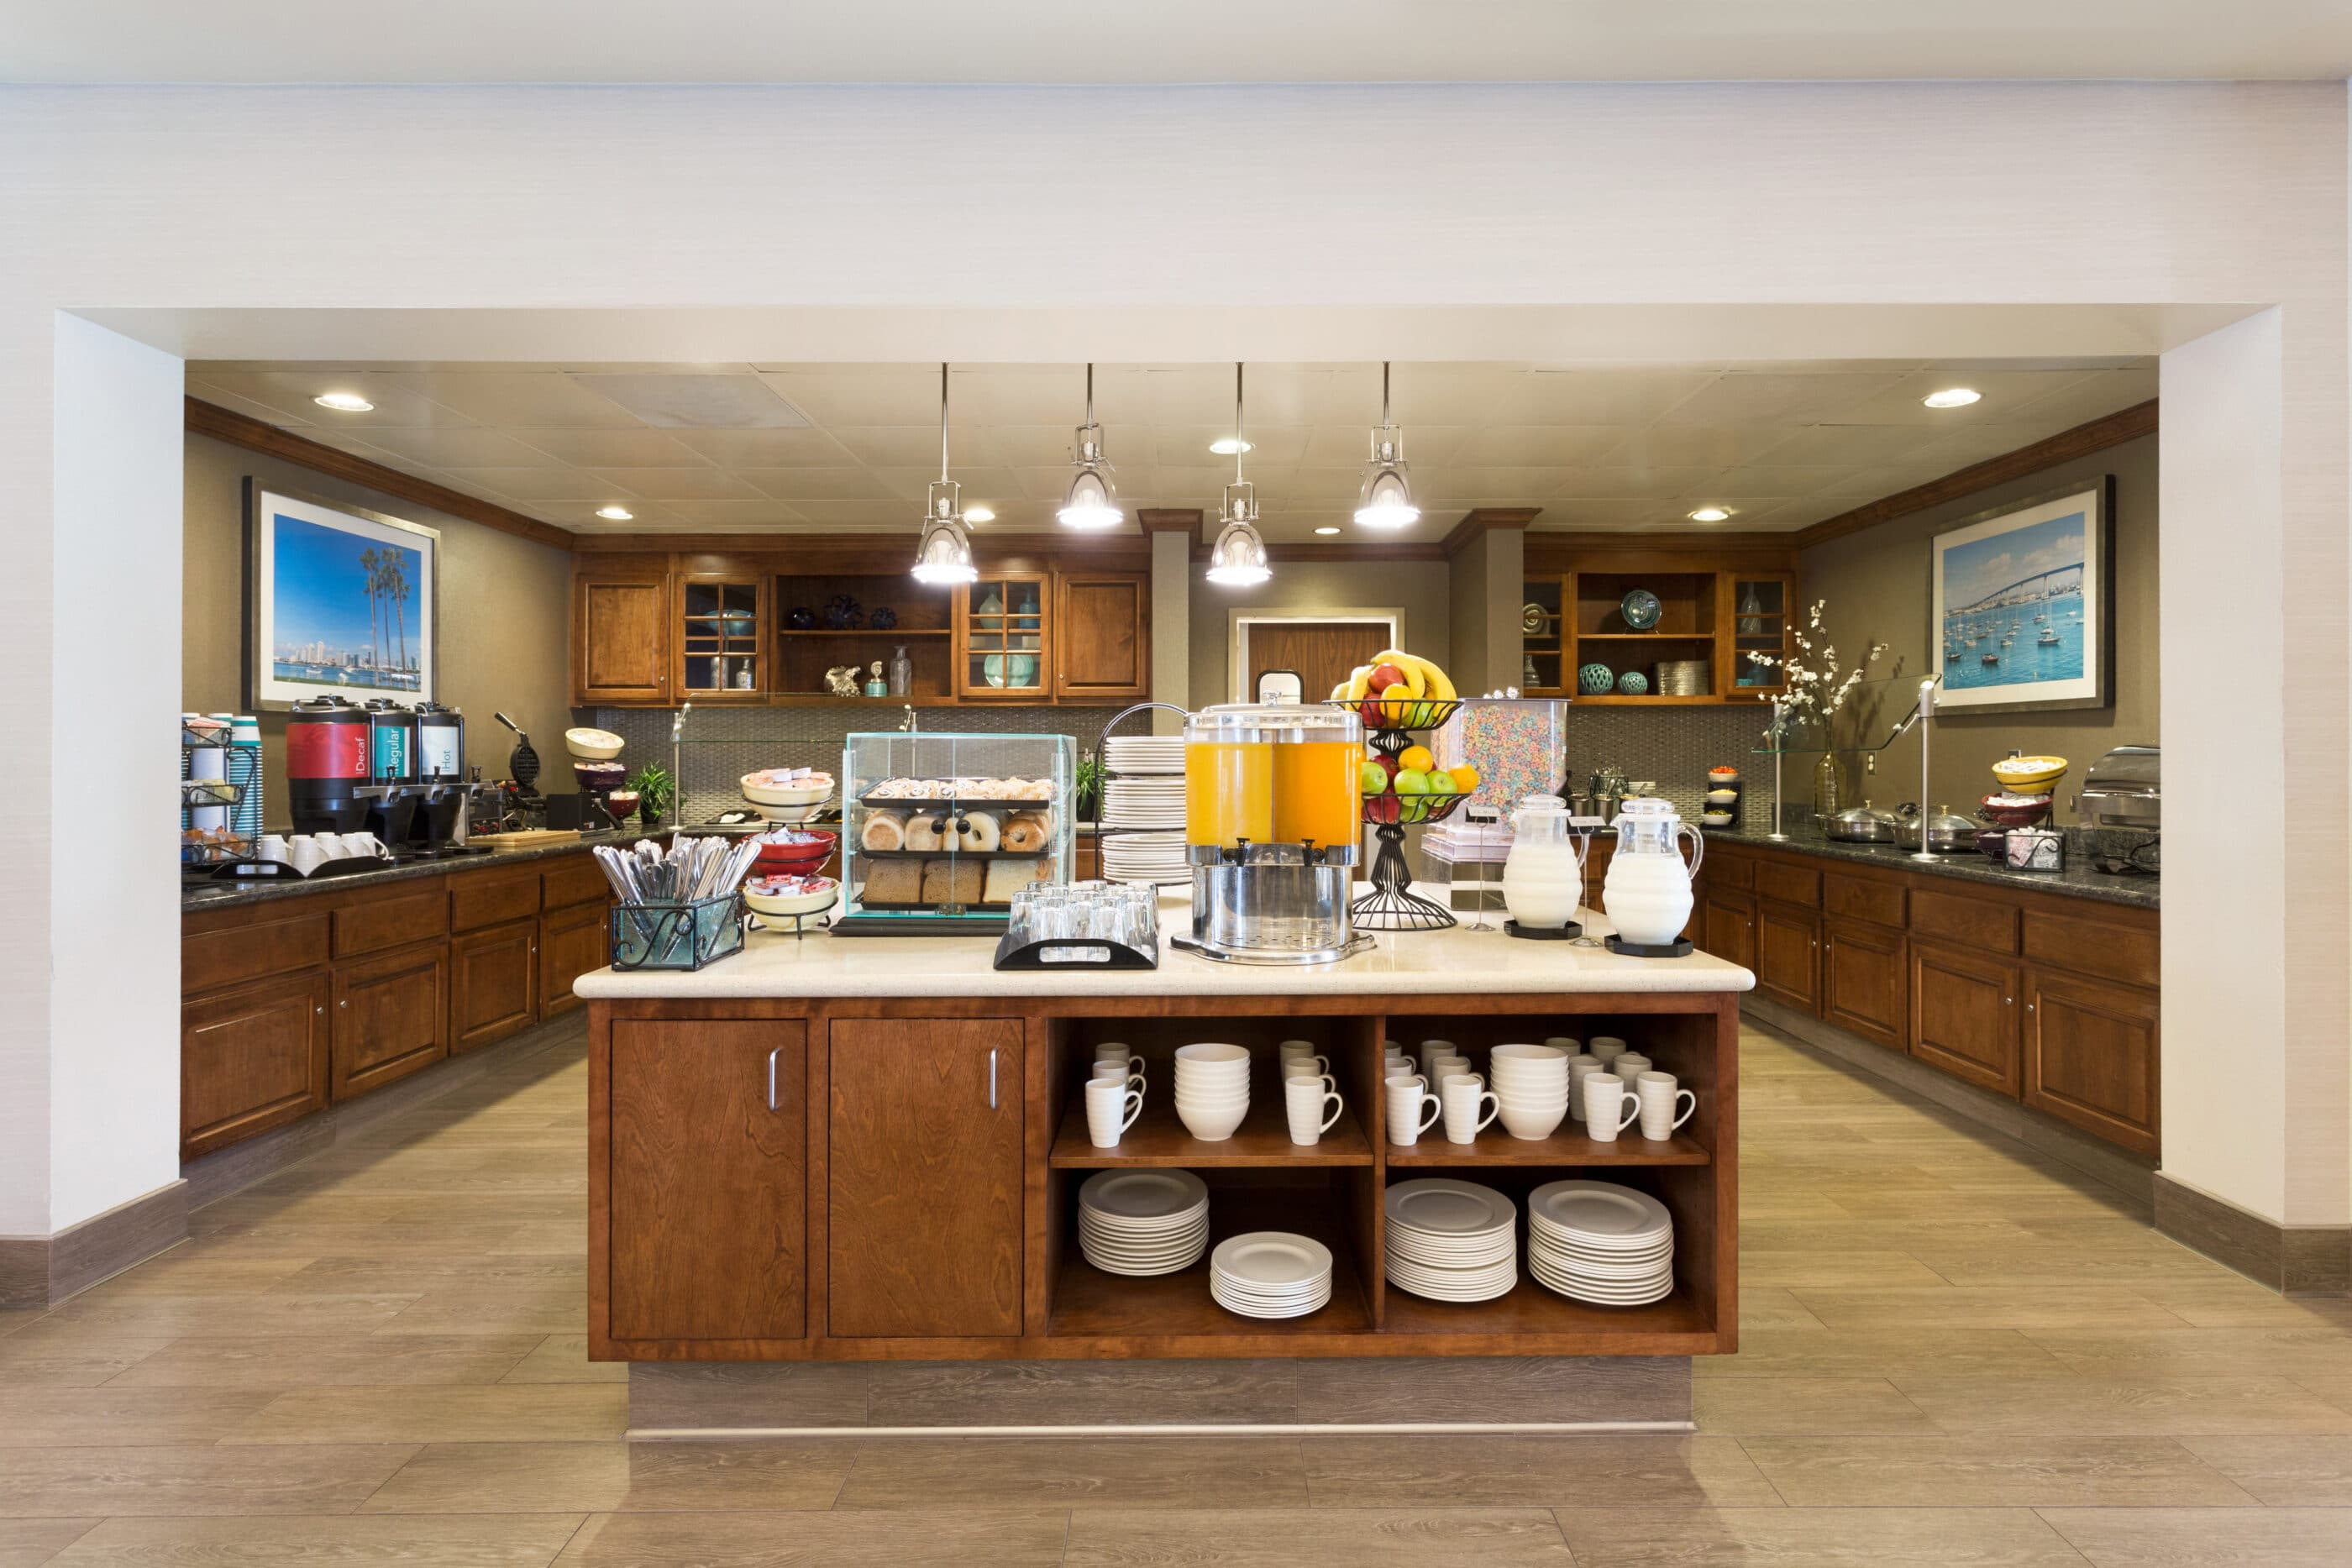 The breakfast area at Homewood Suites by Hilton San Diego Airport/Liberty station